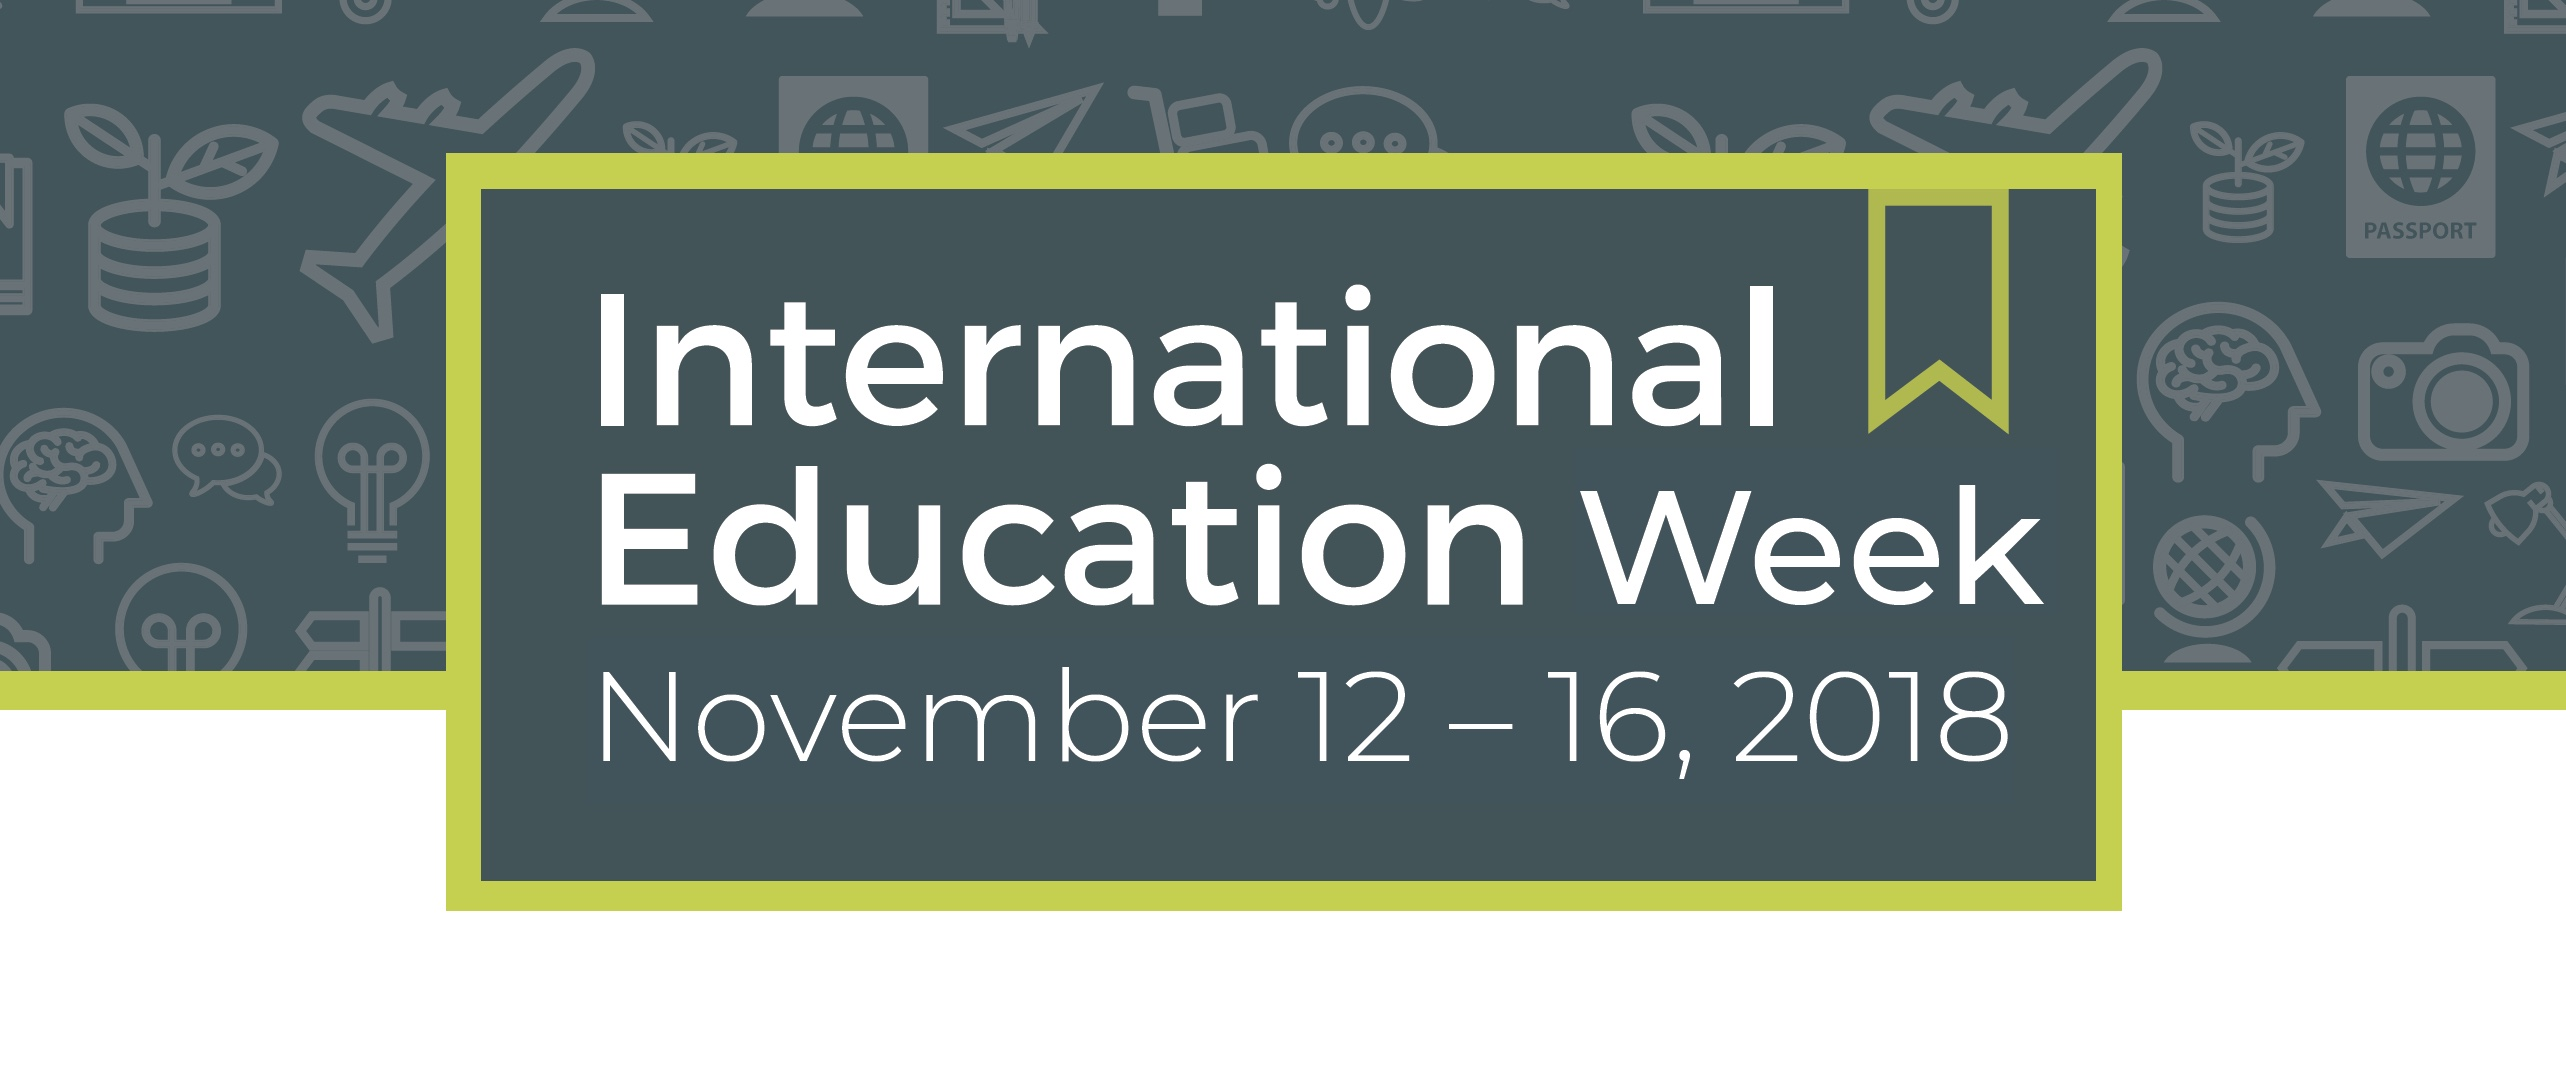 Graphic for International Education Week November 12-16, 2018